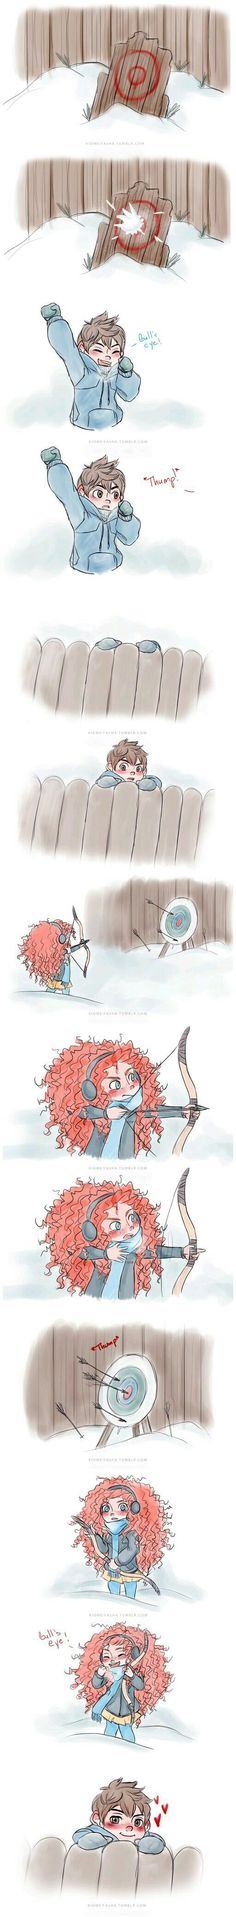 Jack and Merida! So cute!